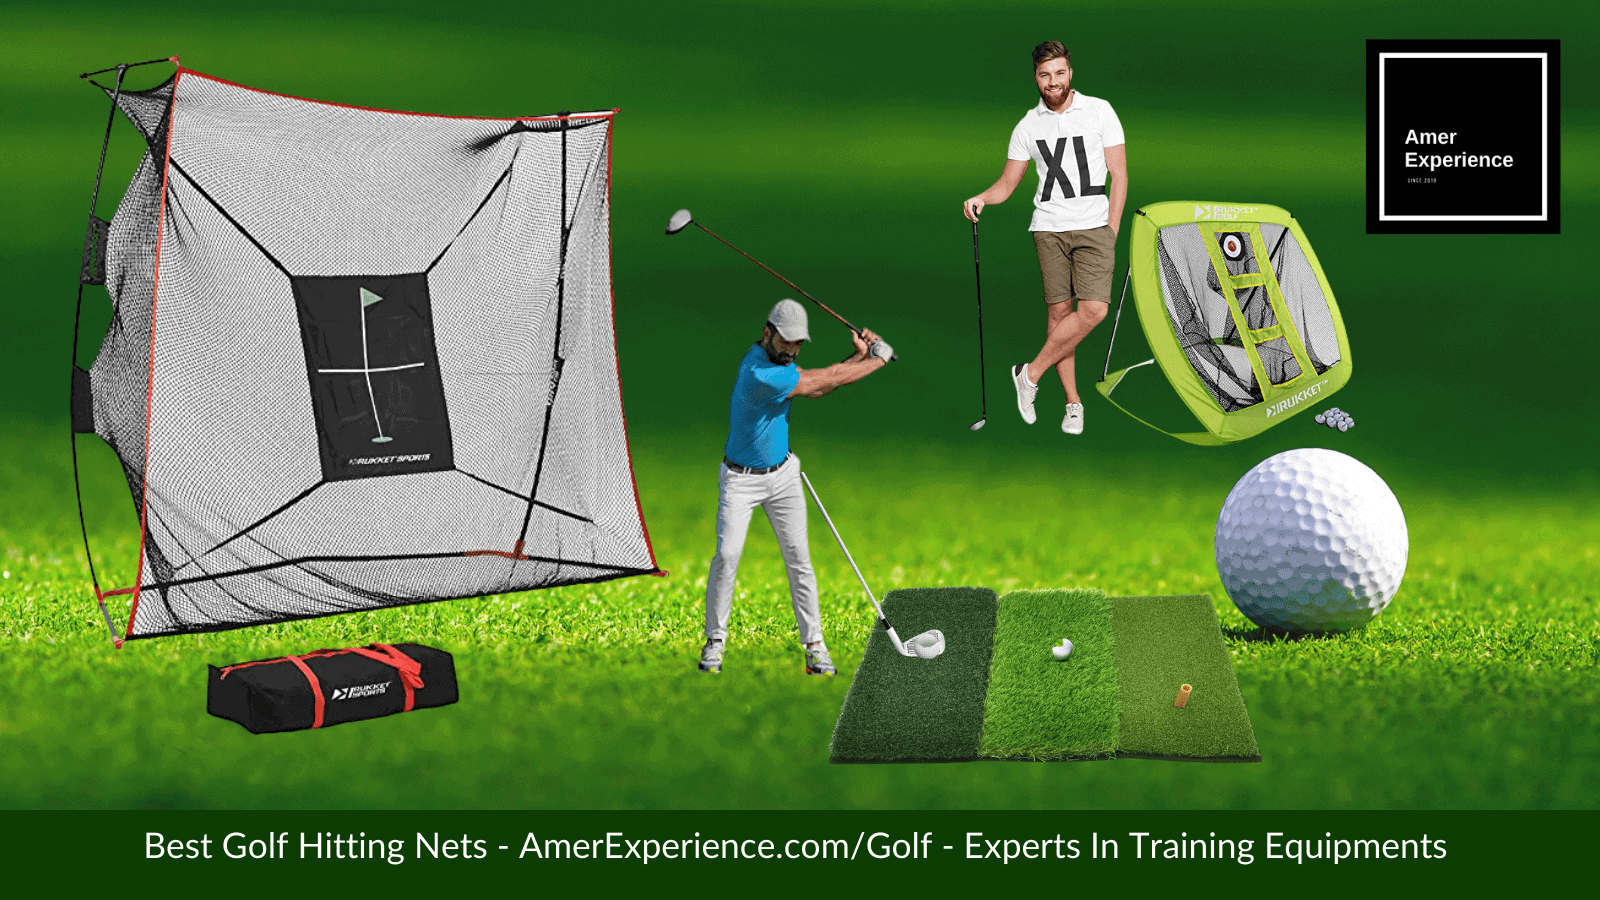 Best Golf Hitting Nets AmerExperience.com Experts in Training Equipments